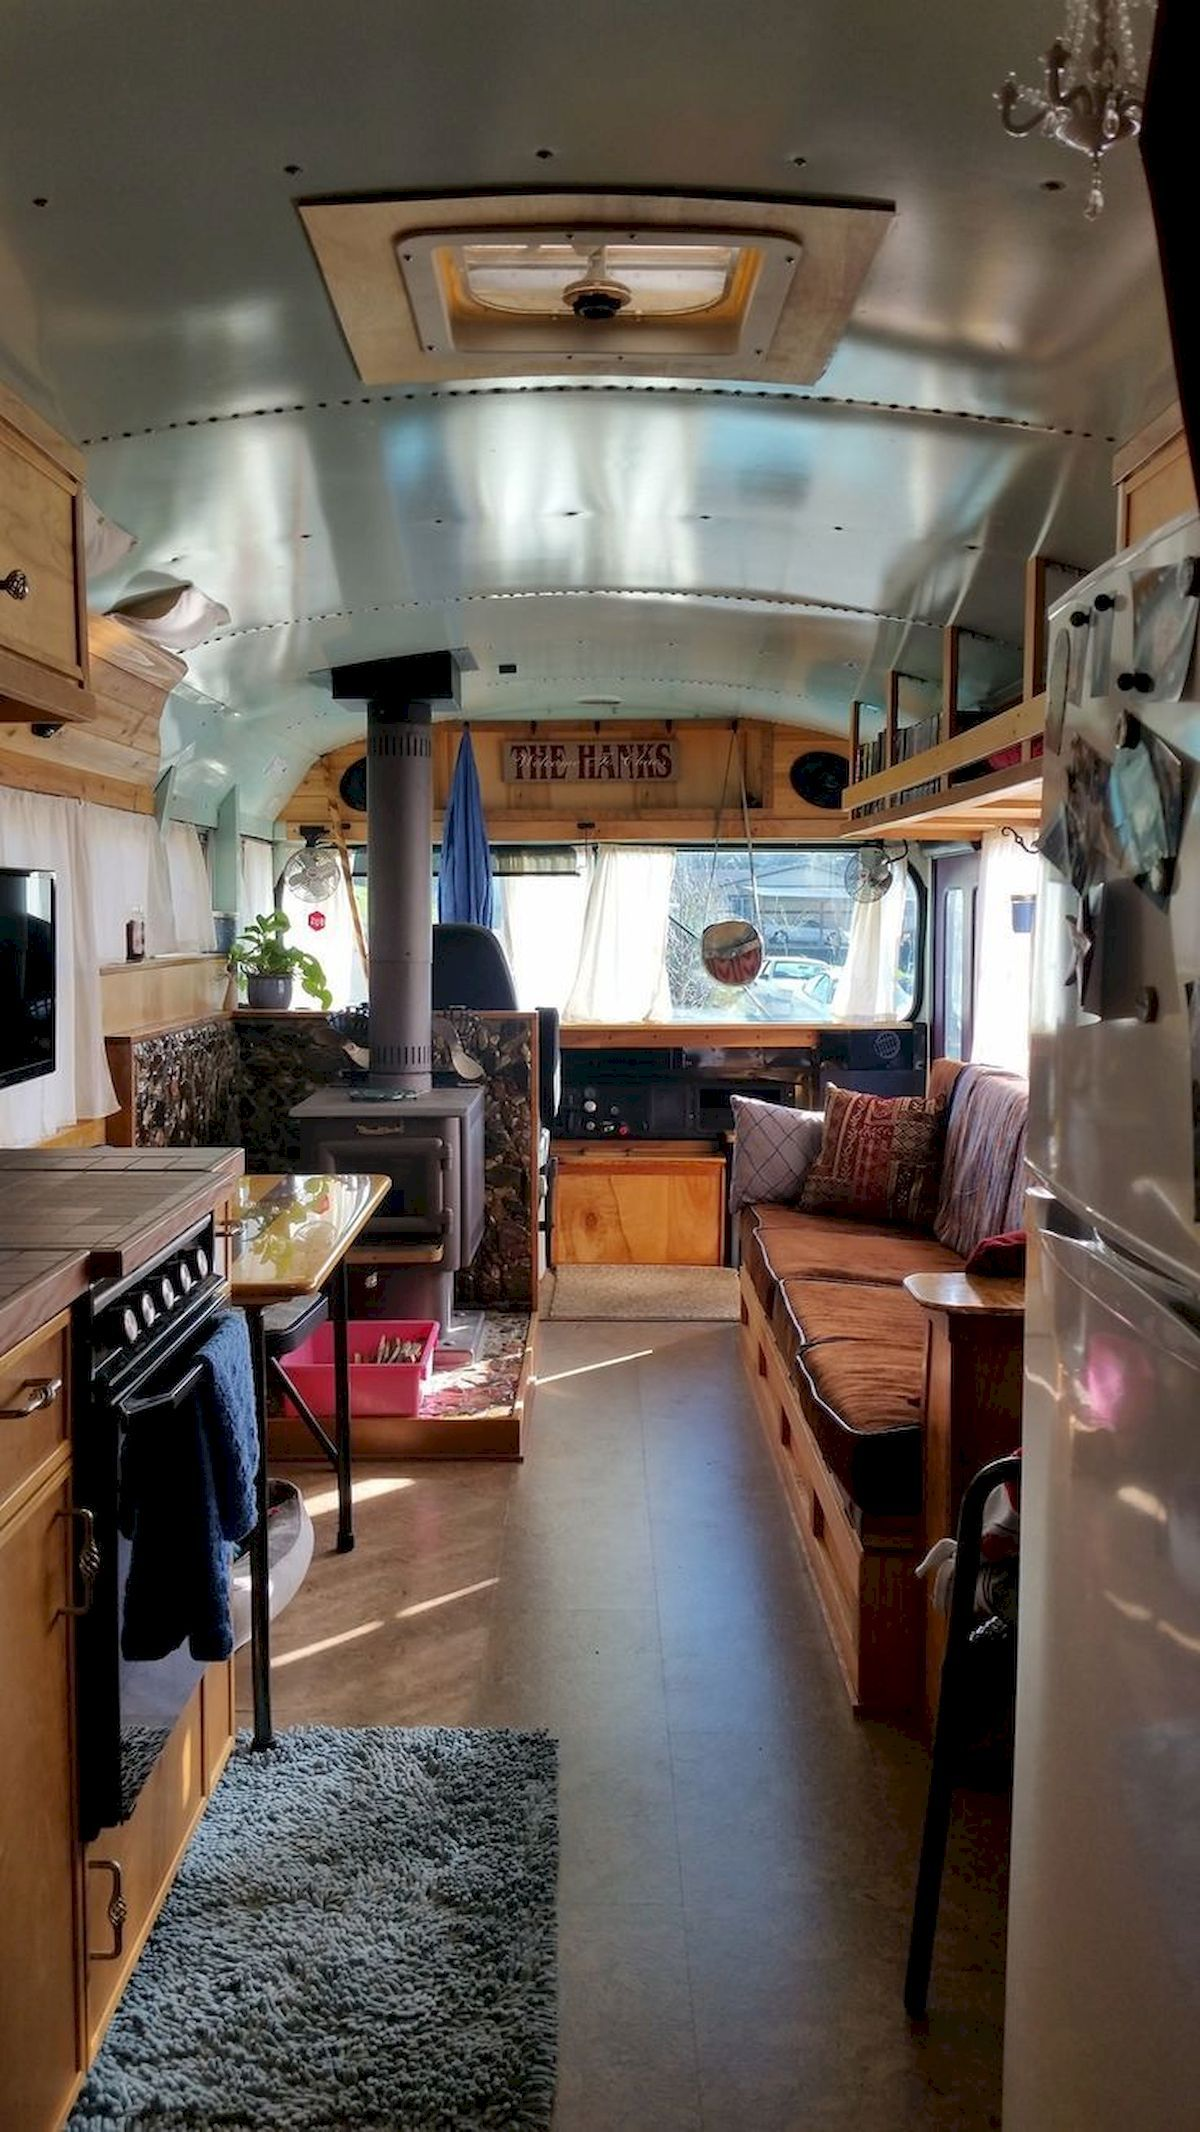 10 Awesome Bus Campers Interior Ideas - Yellowraises  School bus